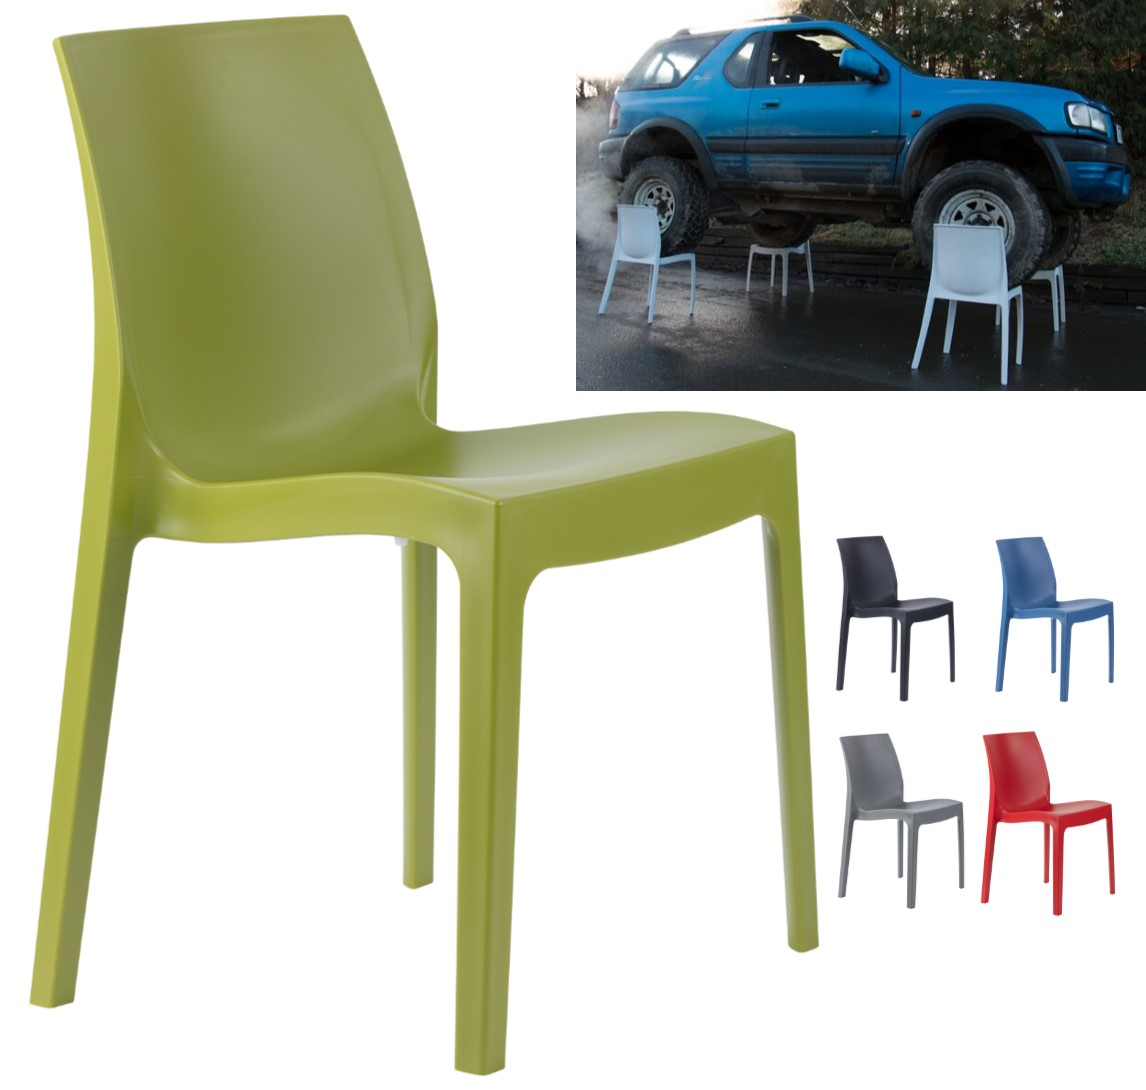 Strata Heavy Duty Polypropylene Stackable Visitor Chair